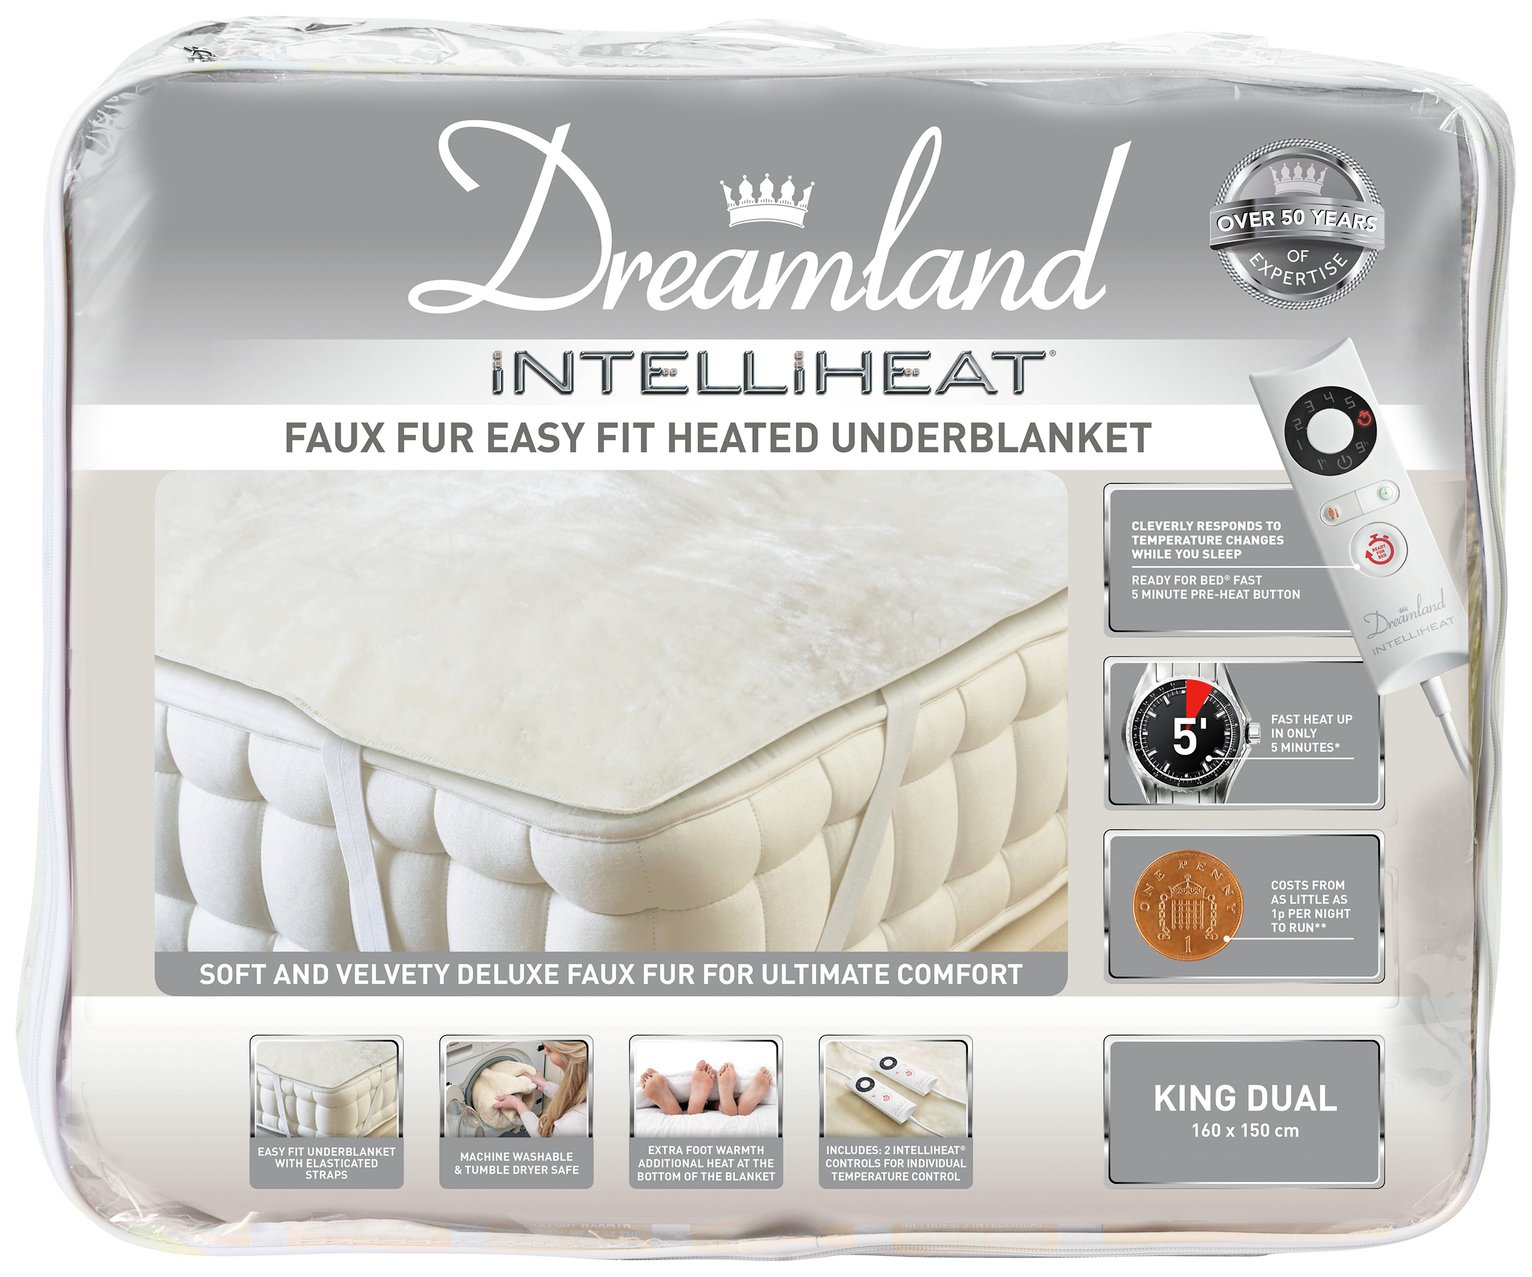 Dreamland Intelliheat Dual Electric Underblanket - King